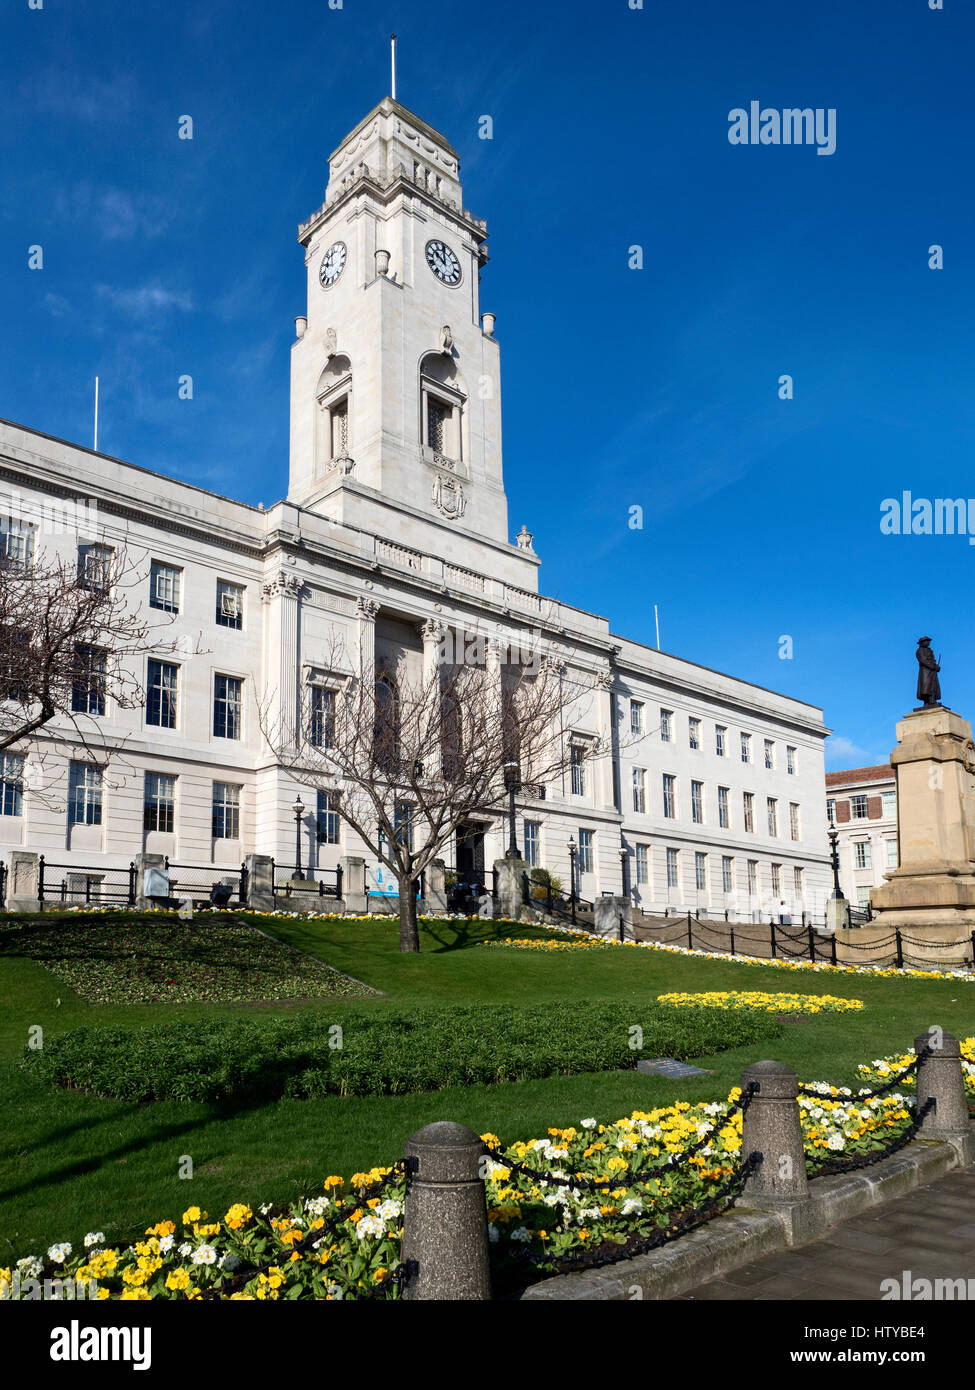 The Portland Stone Town Hall Buidling at Barnsley in Spring South Yorkshire England - Stock Image